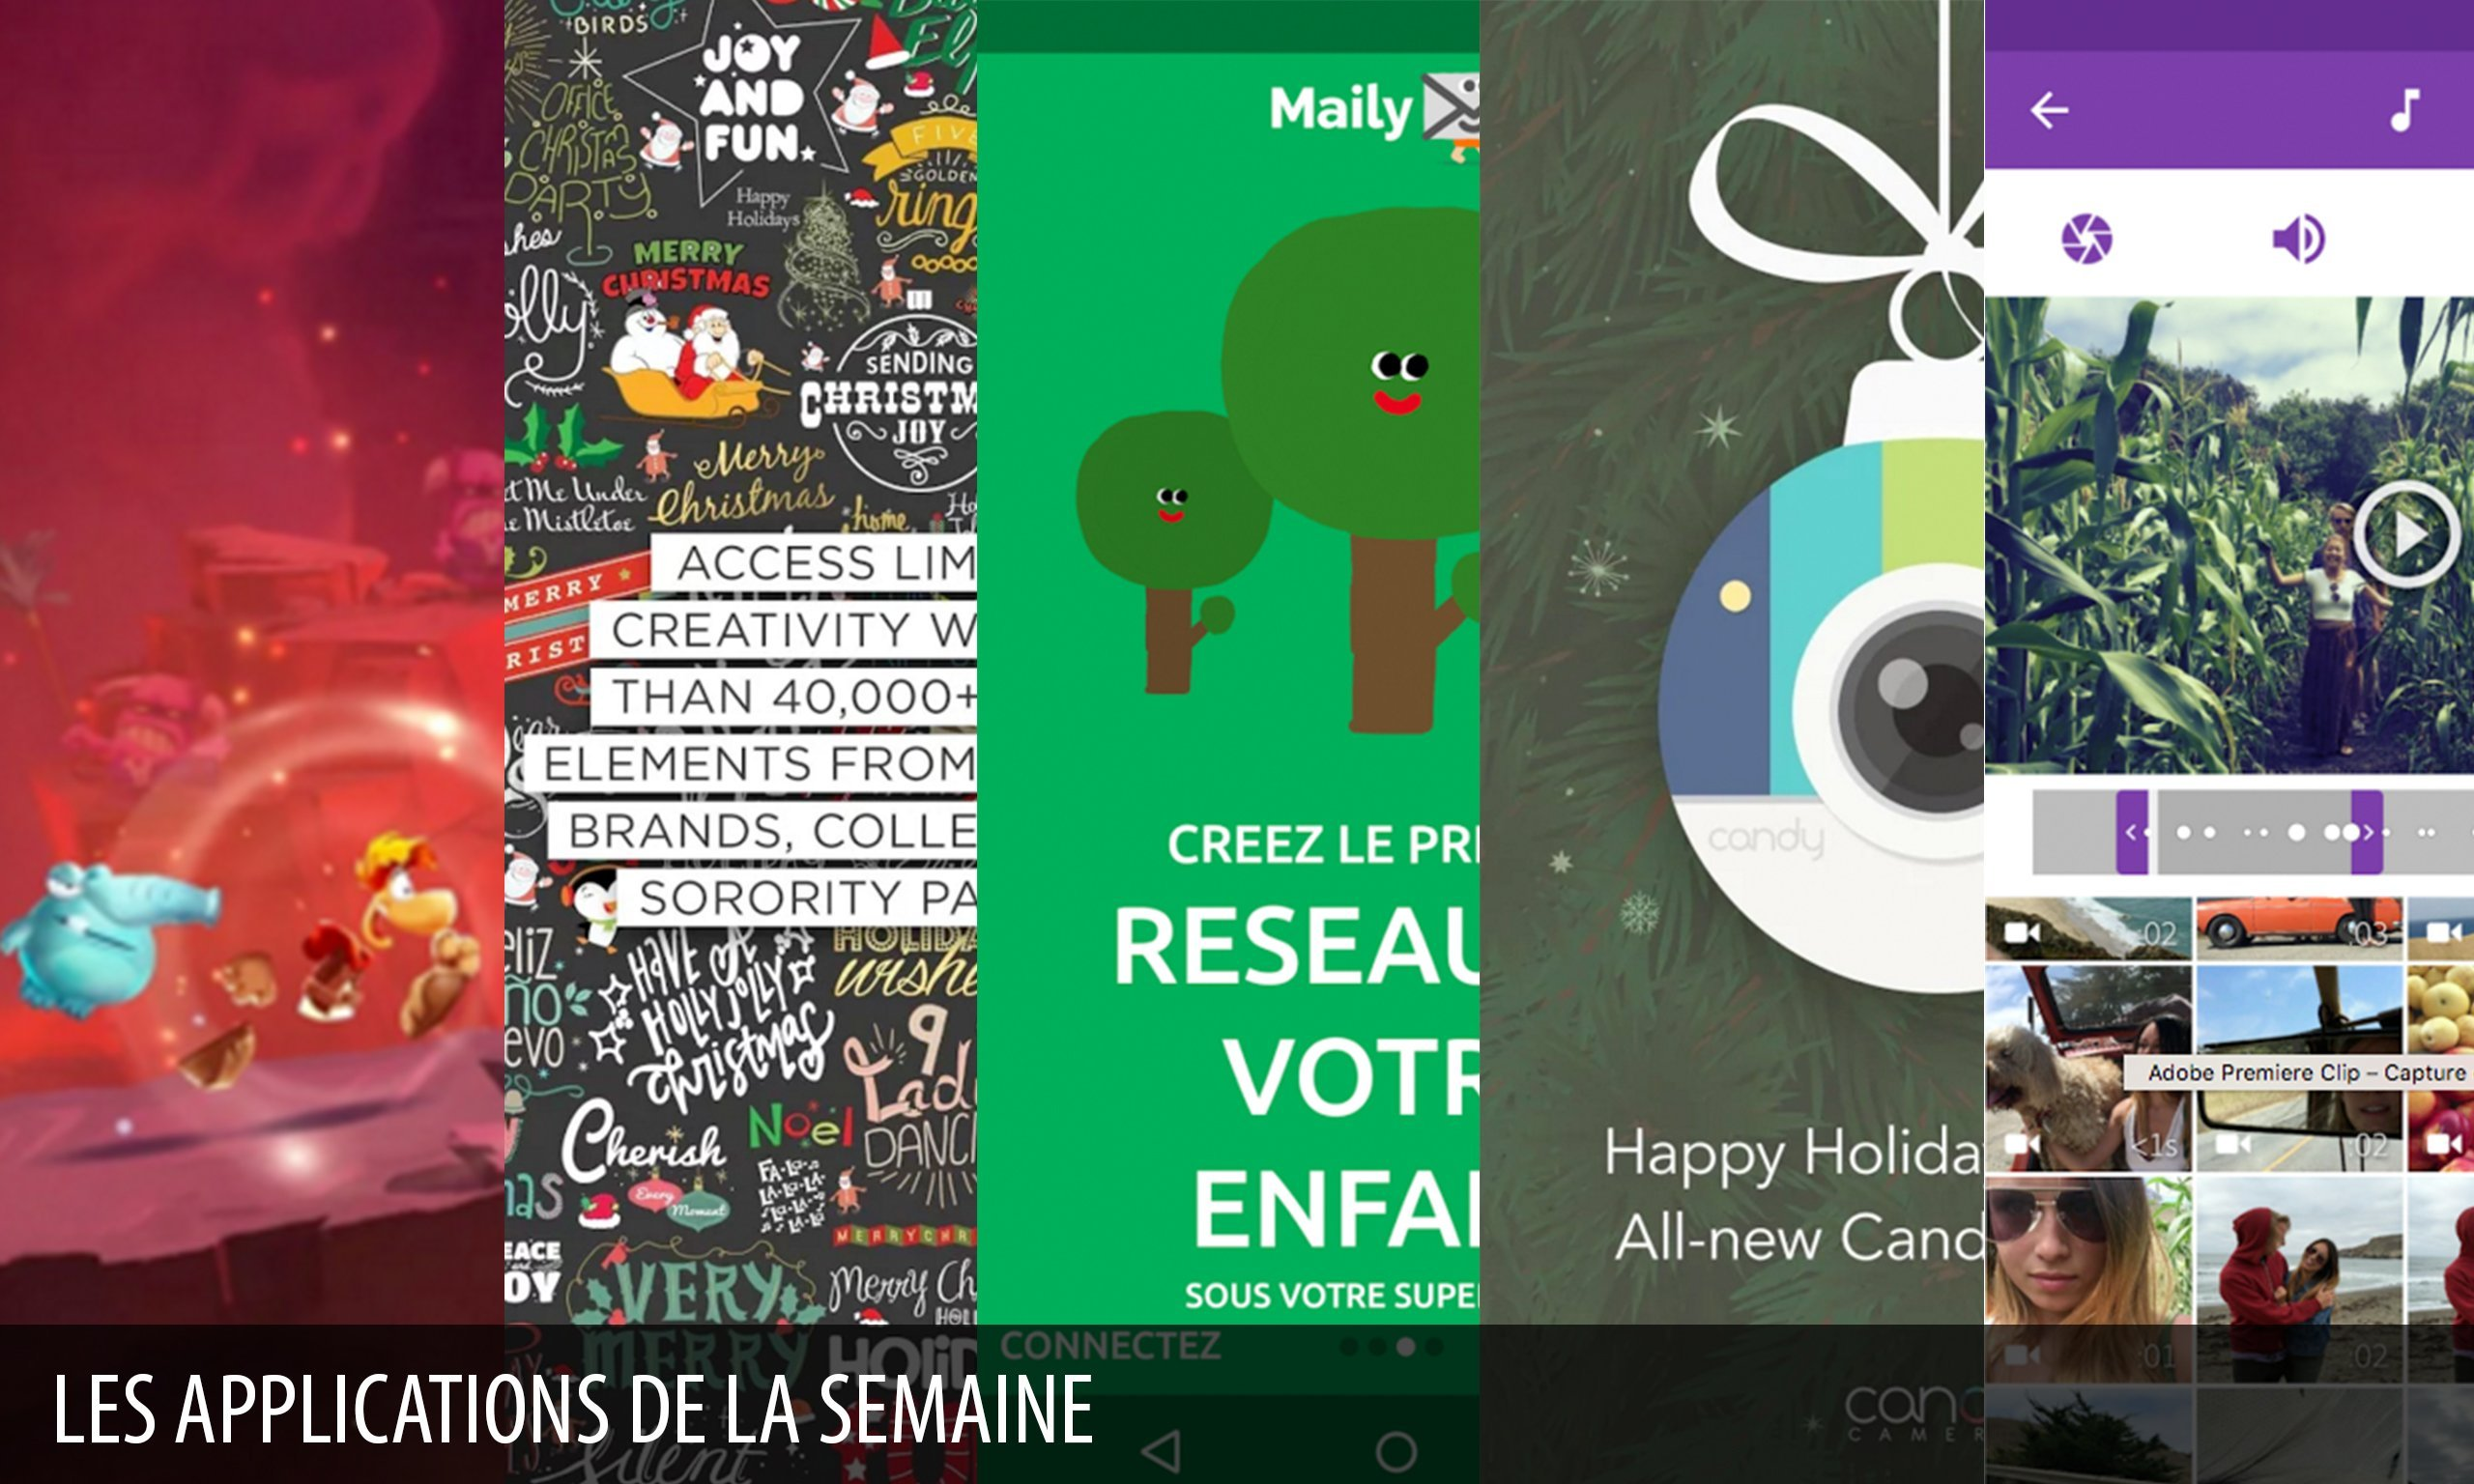 Les apps de la semaine : Adobe Premiere Clip, Rayman Adventures…